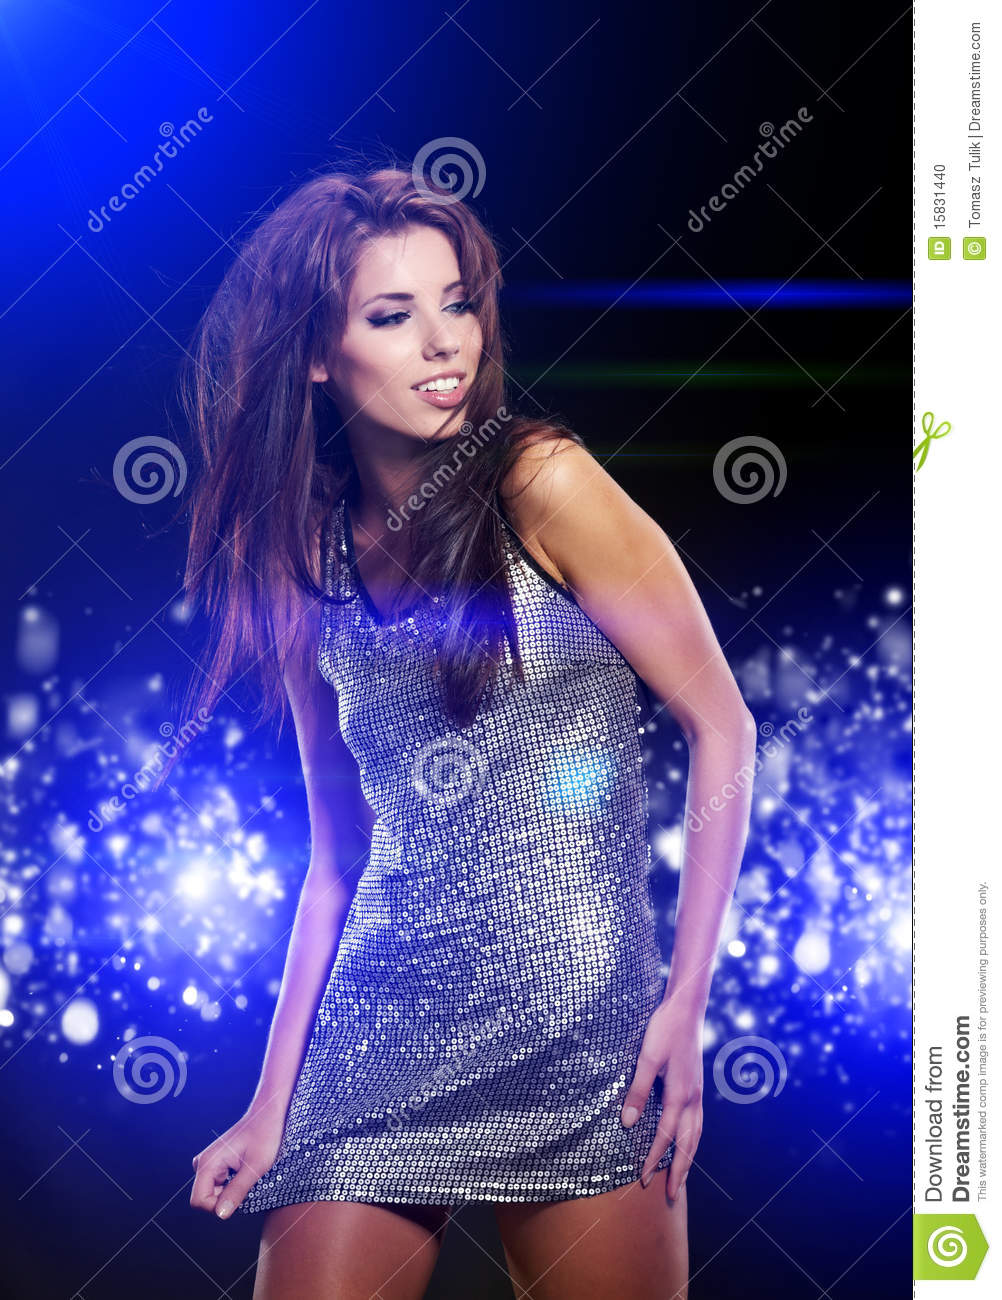 Beautiful Dancing Girl Stock Photo Image 15831440